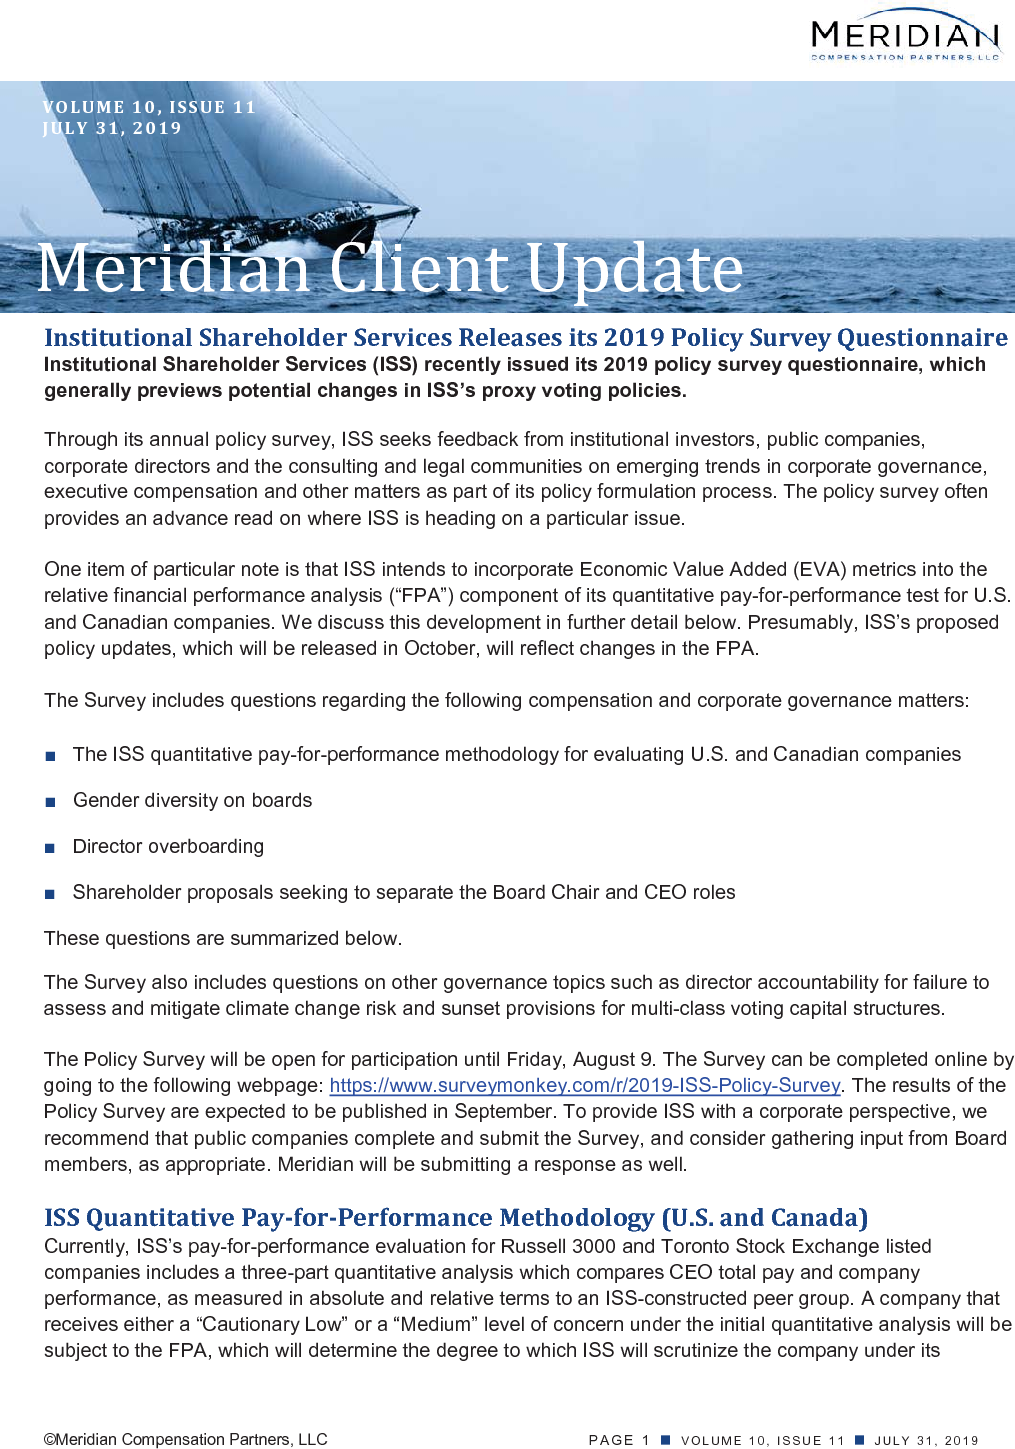 Institutional Shareholder Services Releases its 2019 Policy Survey Questionnaire (PDF)